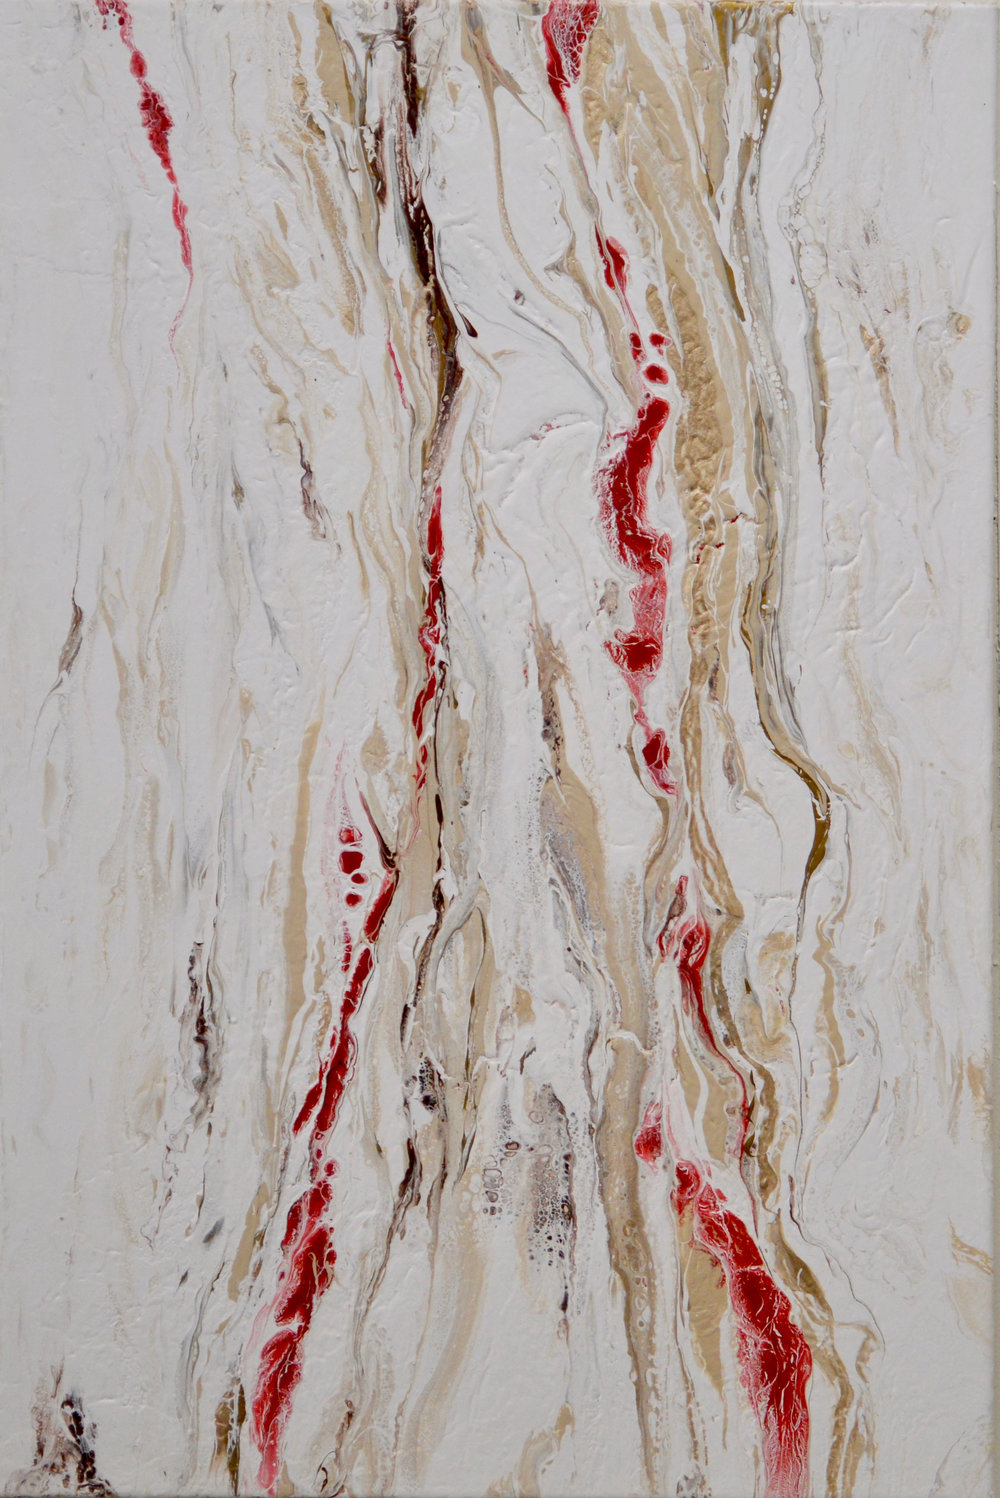 Donna Jassmann_Pathways_2mixed media_4 x 36 inches or 36 x 24 inches_1500.00.jpg